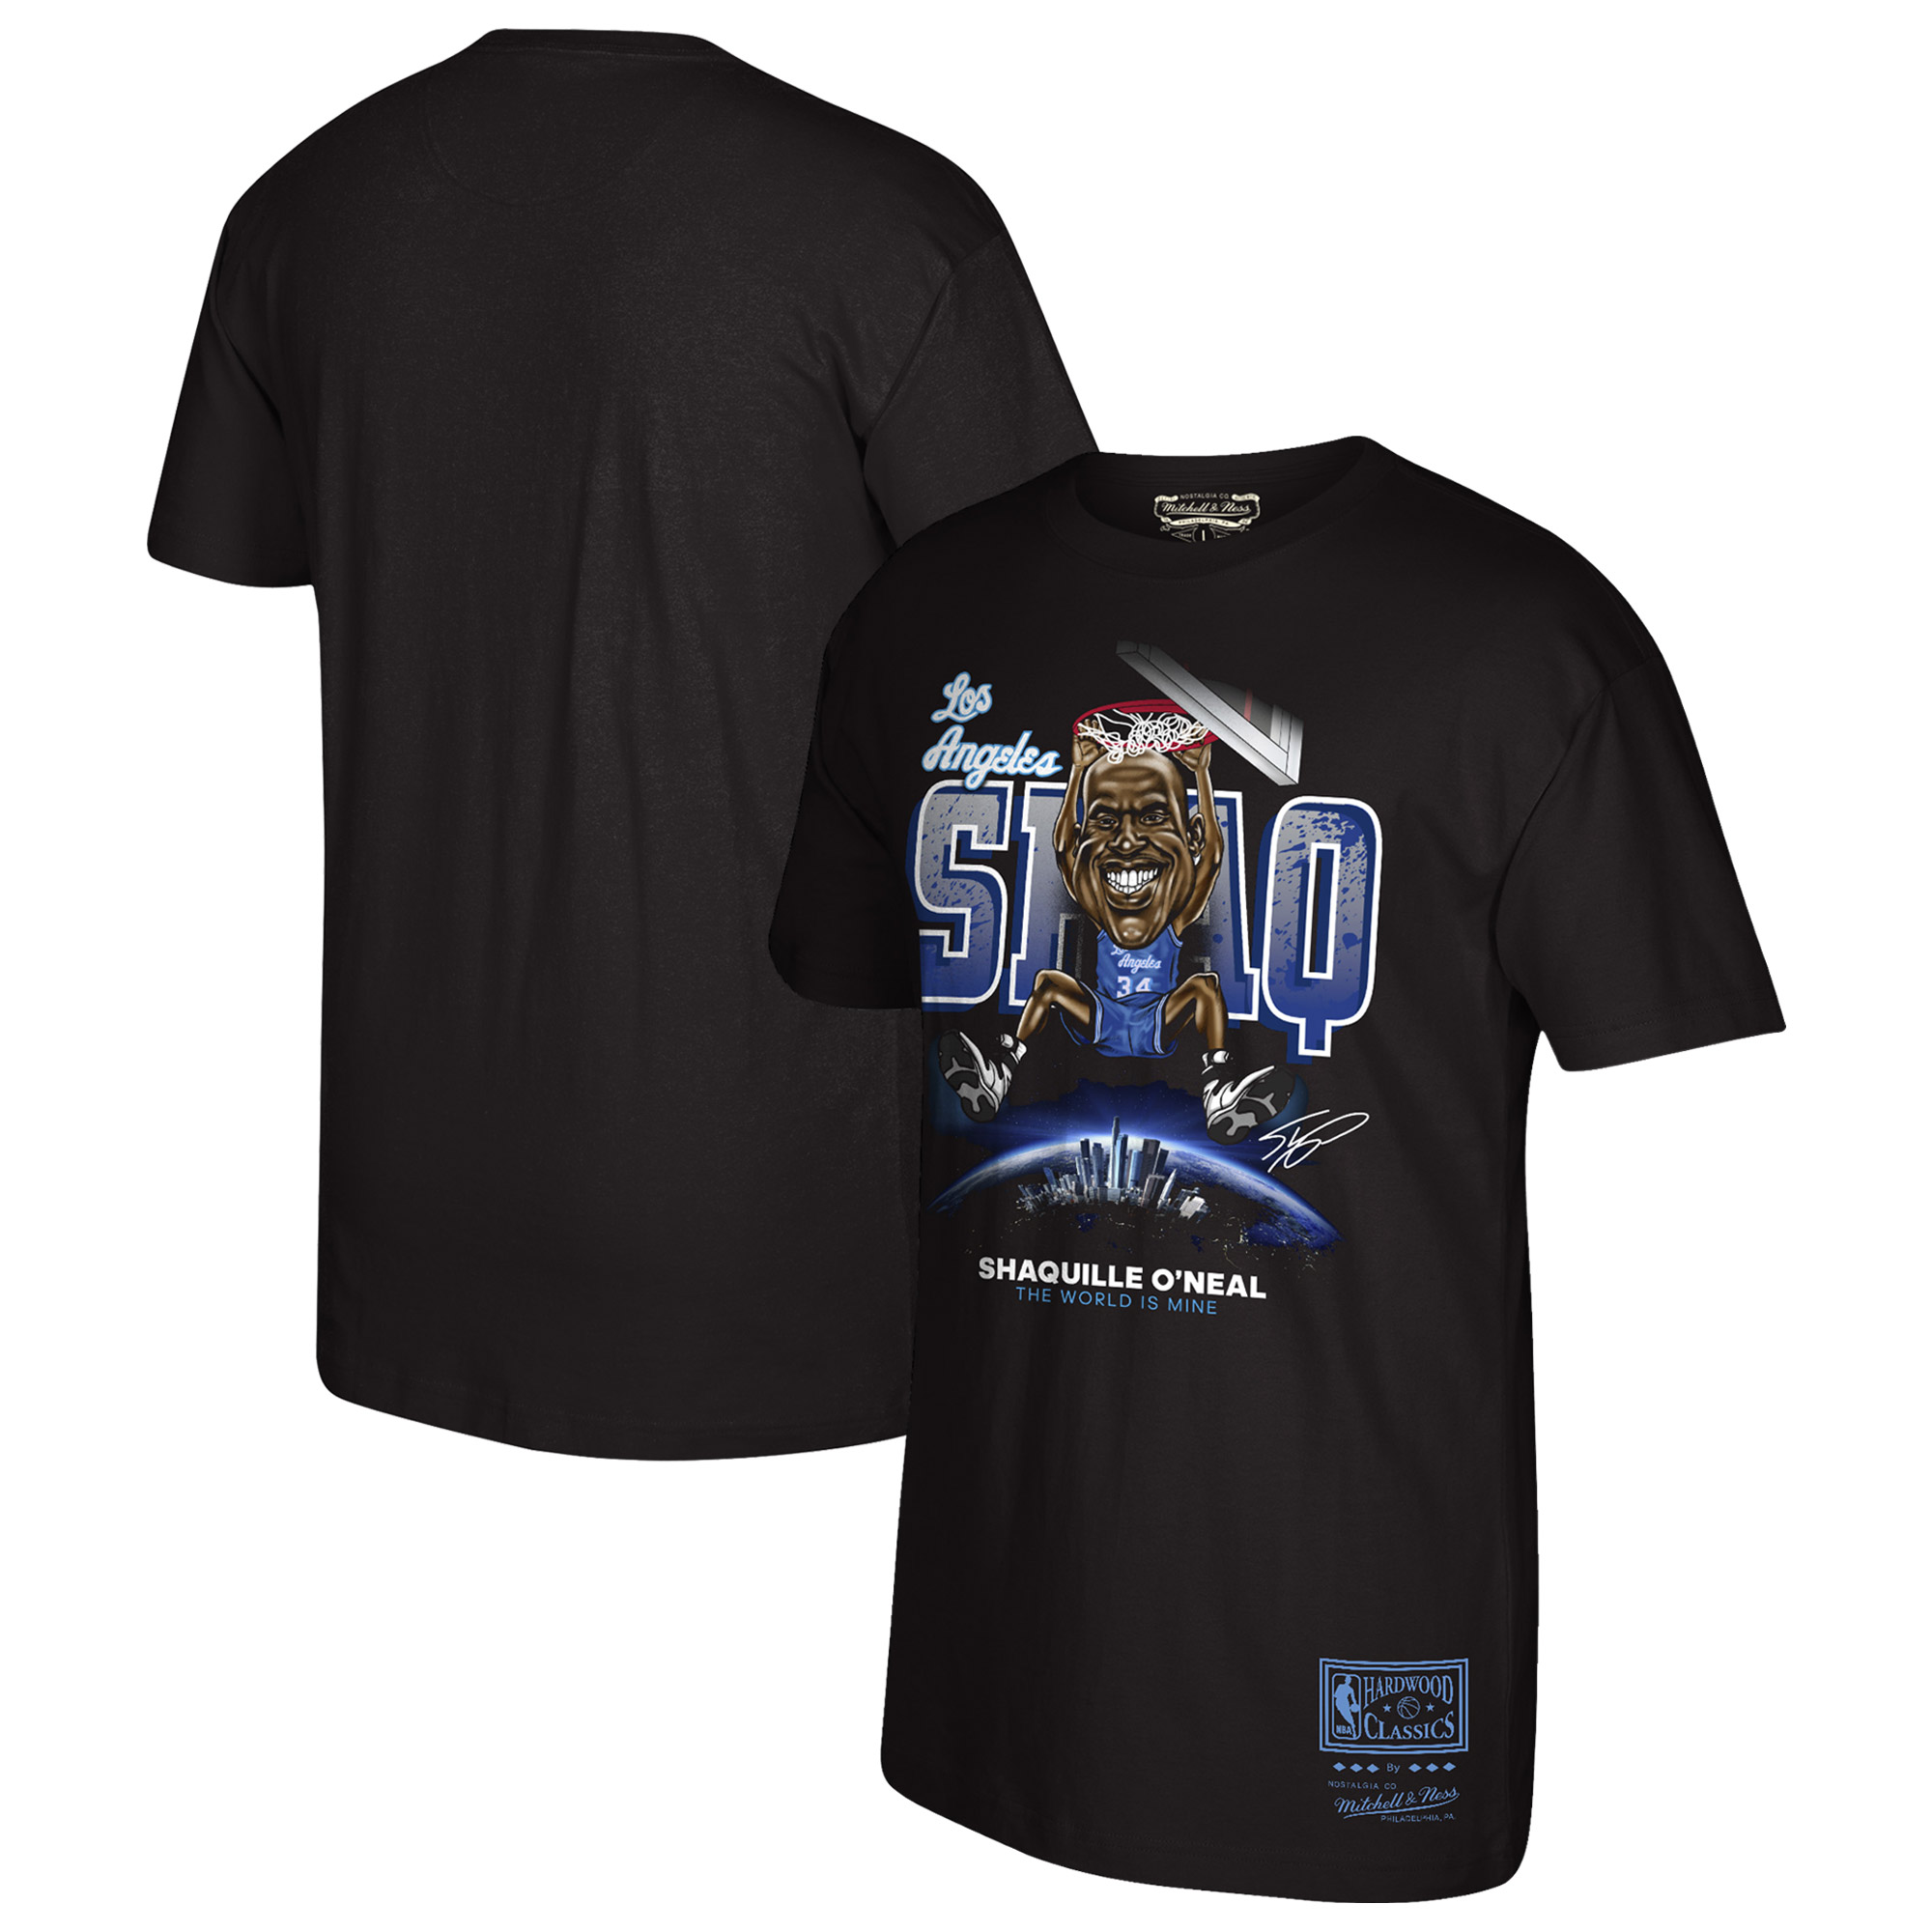 Shaquille O'Neal Los Angeles Lakers Mitchell & Ness Hardwood Classics 90's Collection T-Shirt - Black